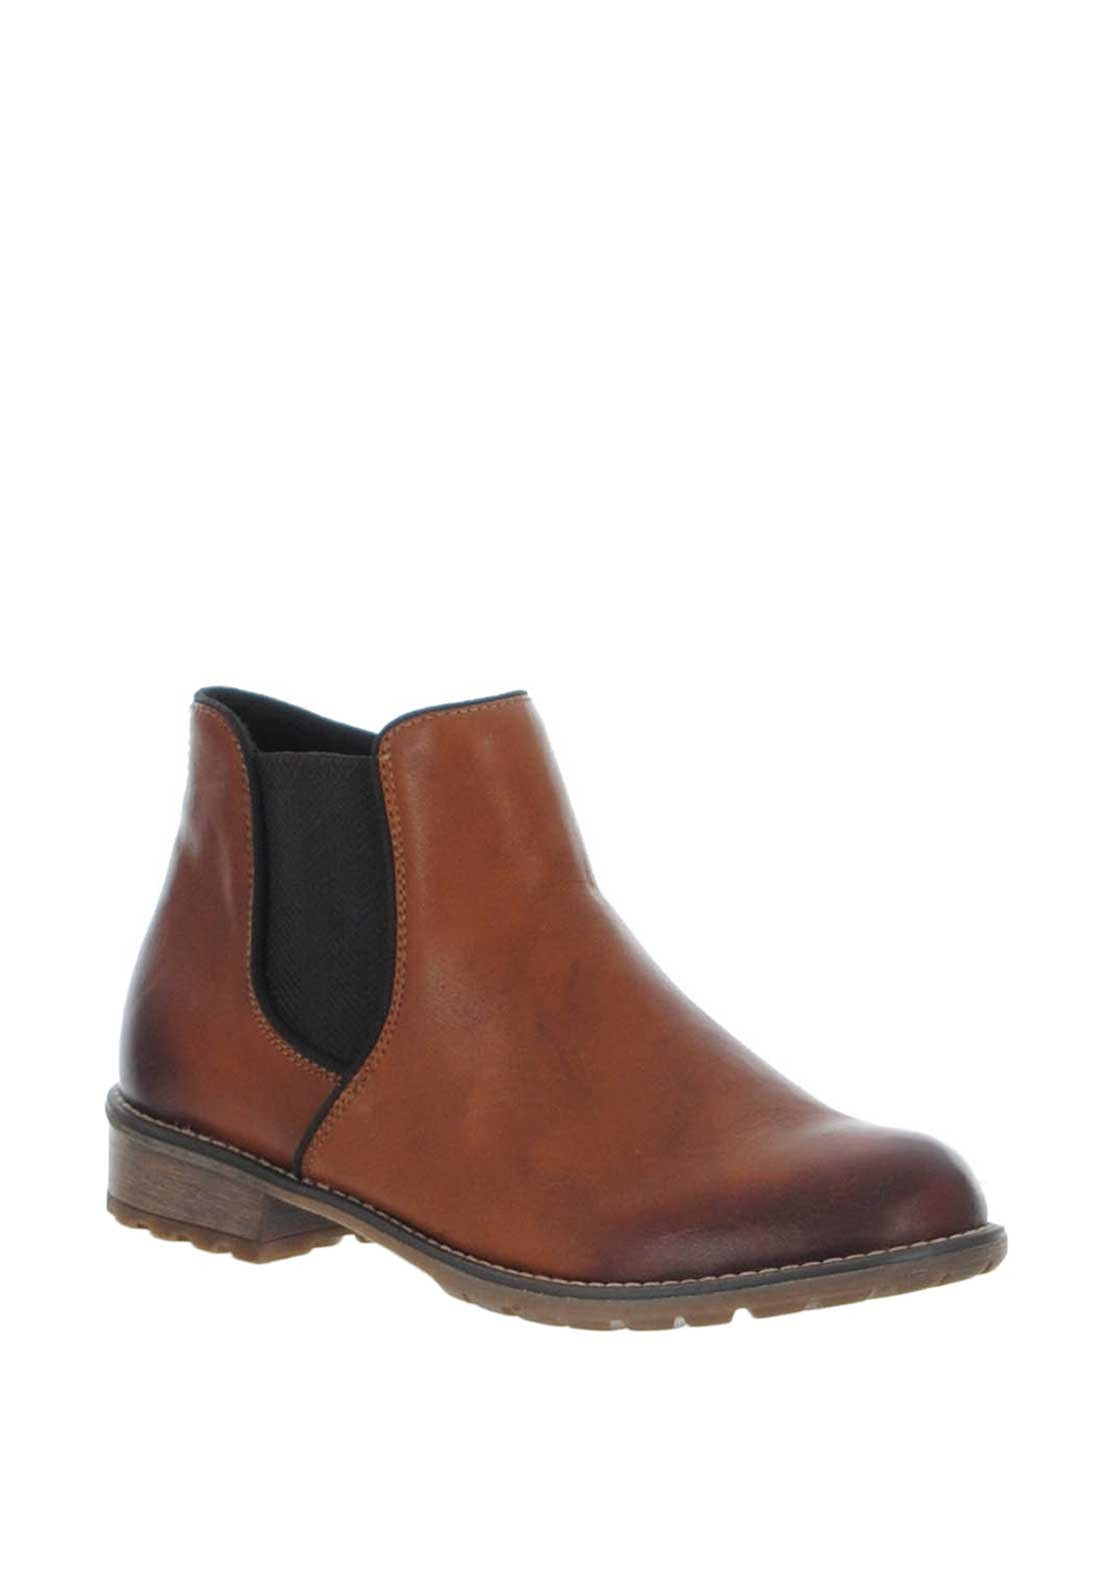 b2a174f6 Remonte Leather Chelsea Boots, Tan   McElhinneys